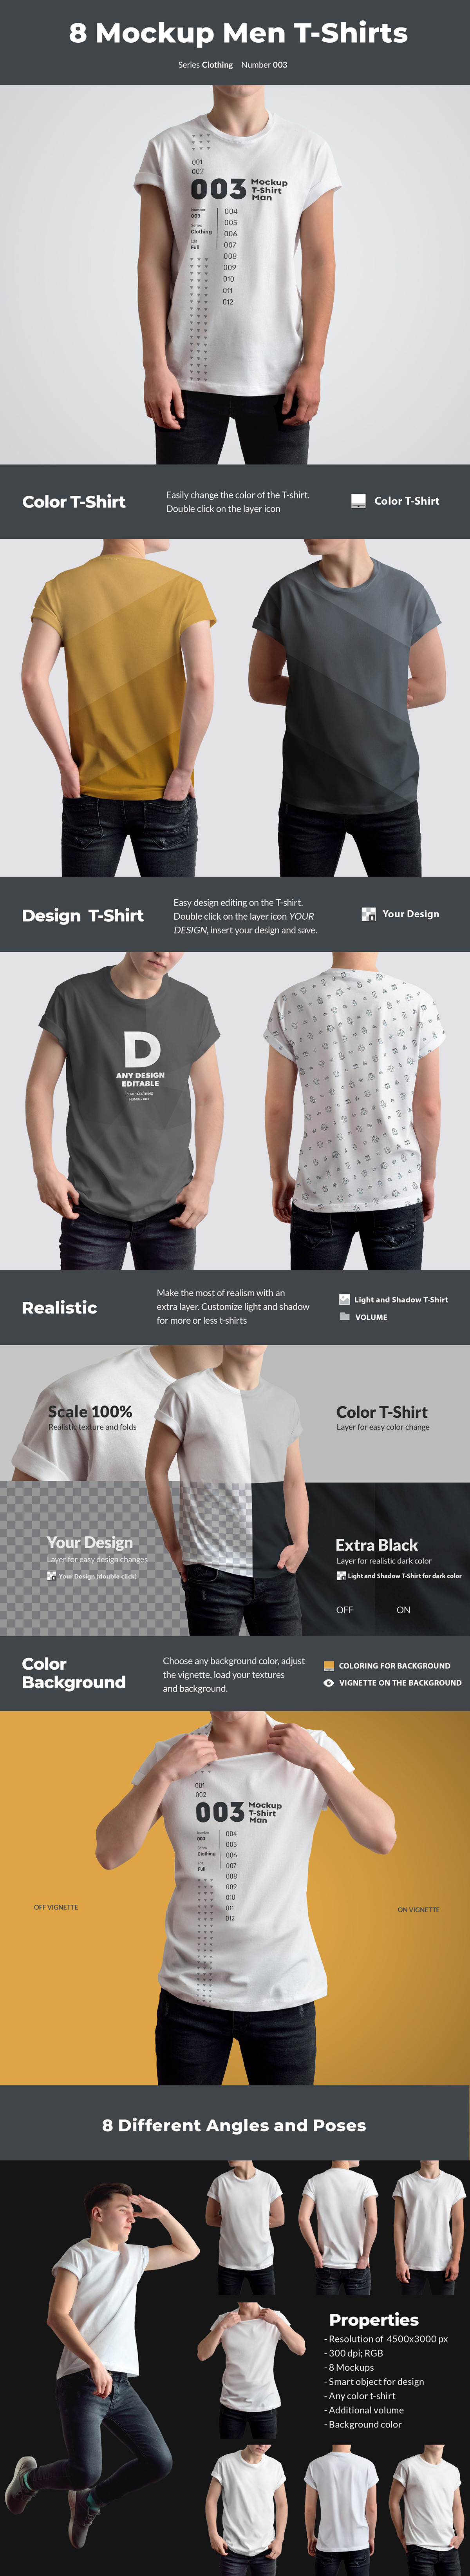 Download 8 Mockups T Shirts On The Man In Apparel Mockups On Yellow Images Creative Store Yellowimages Mockups